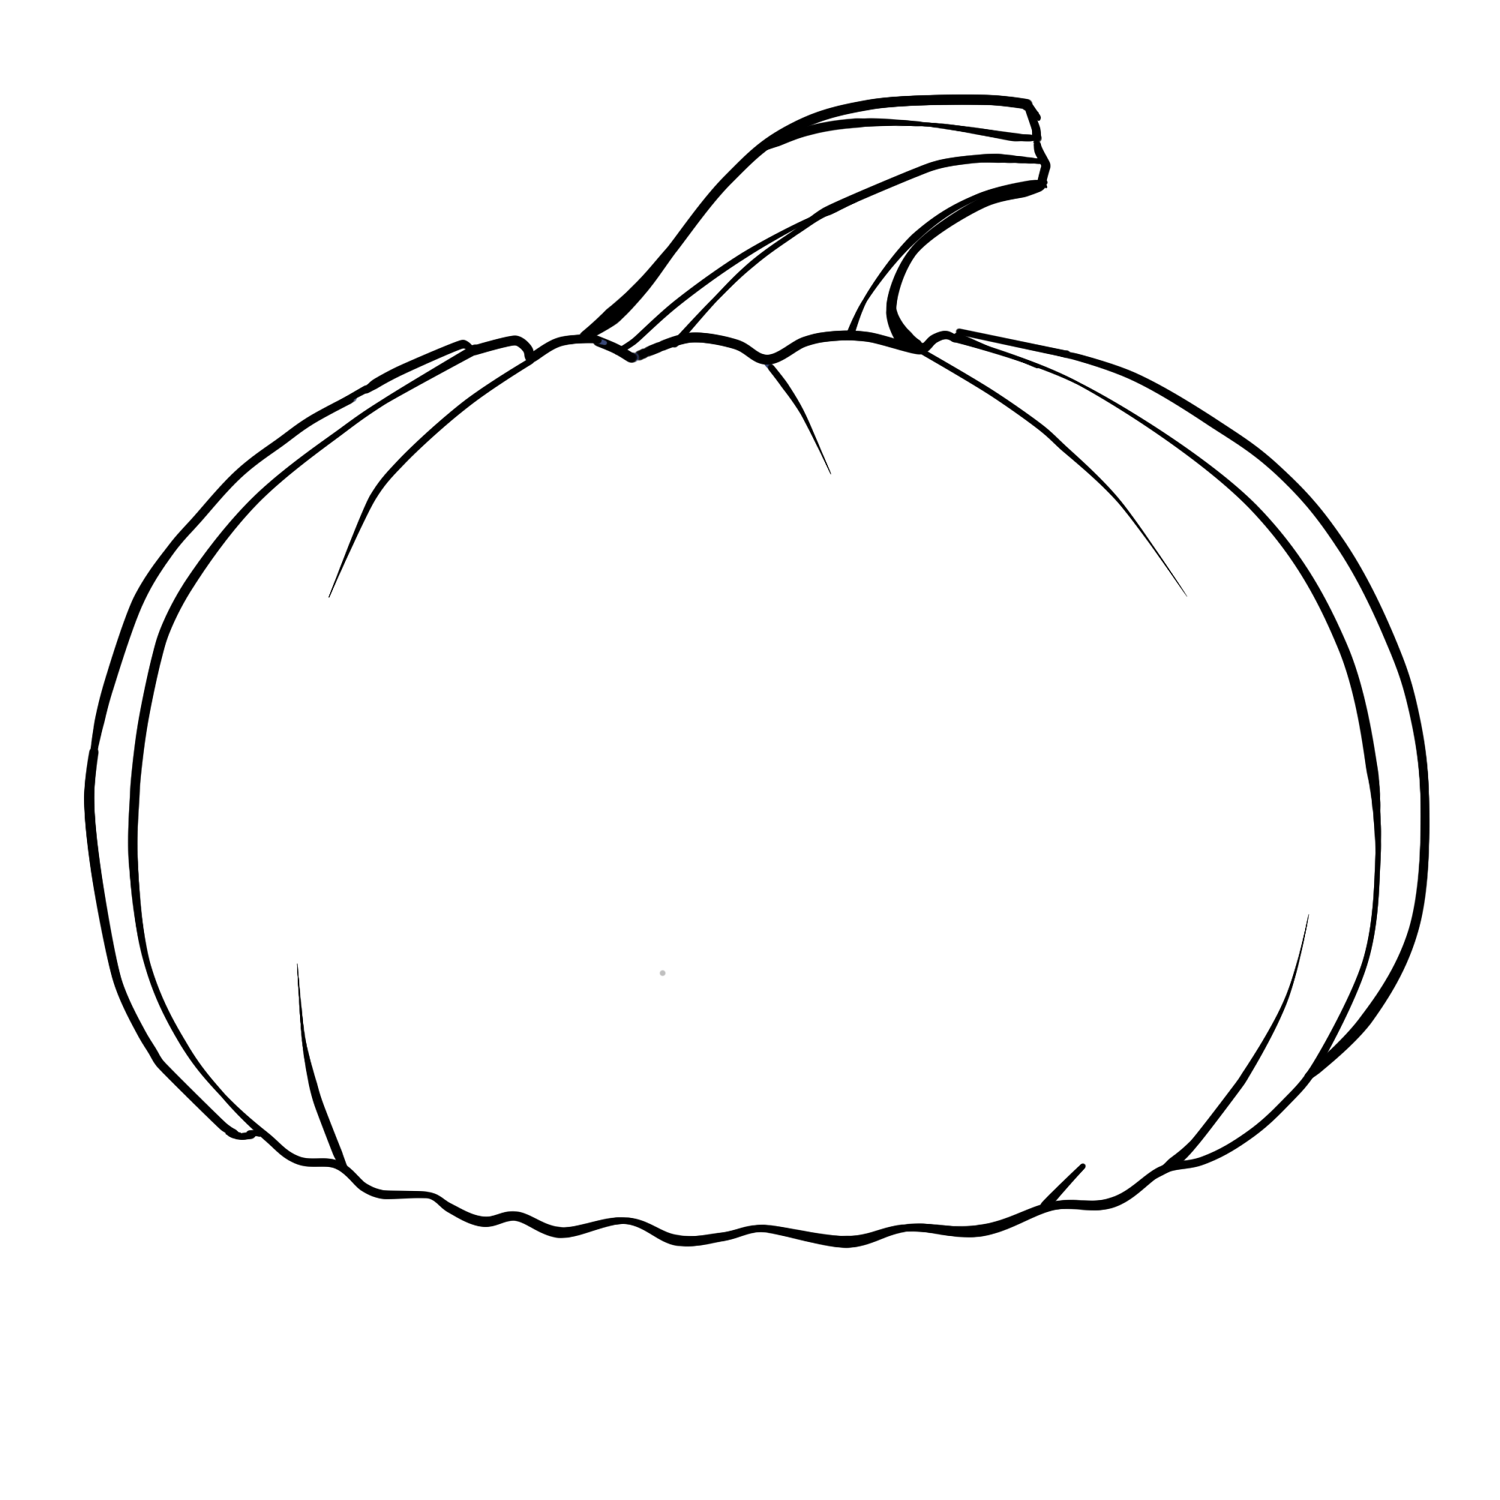 Pumpkin Outline Clipart Clipart Panda